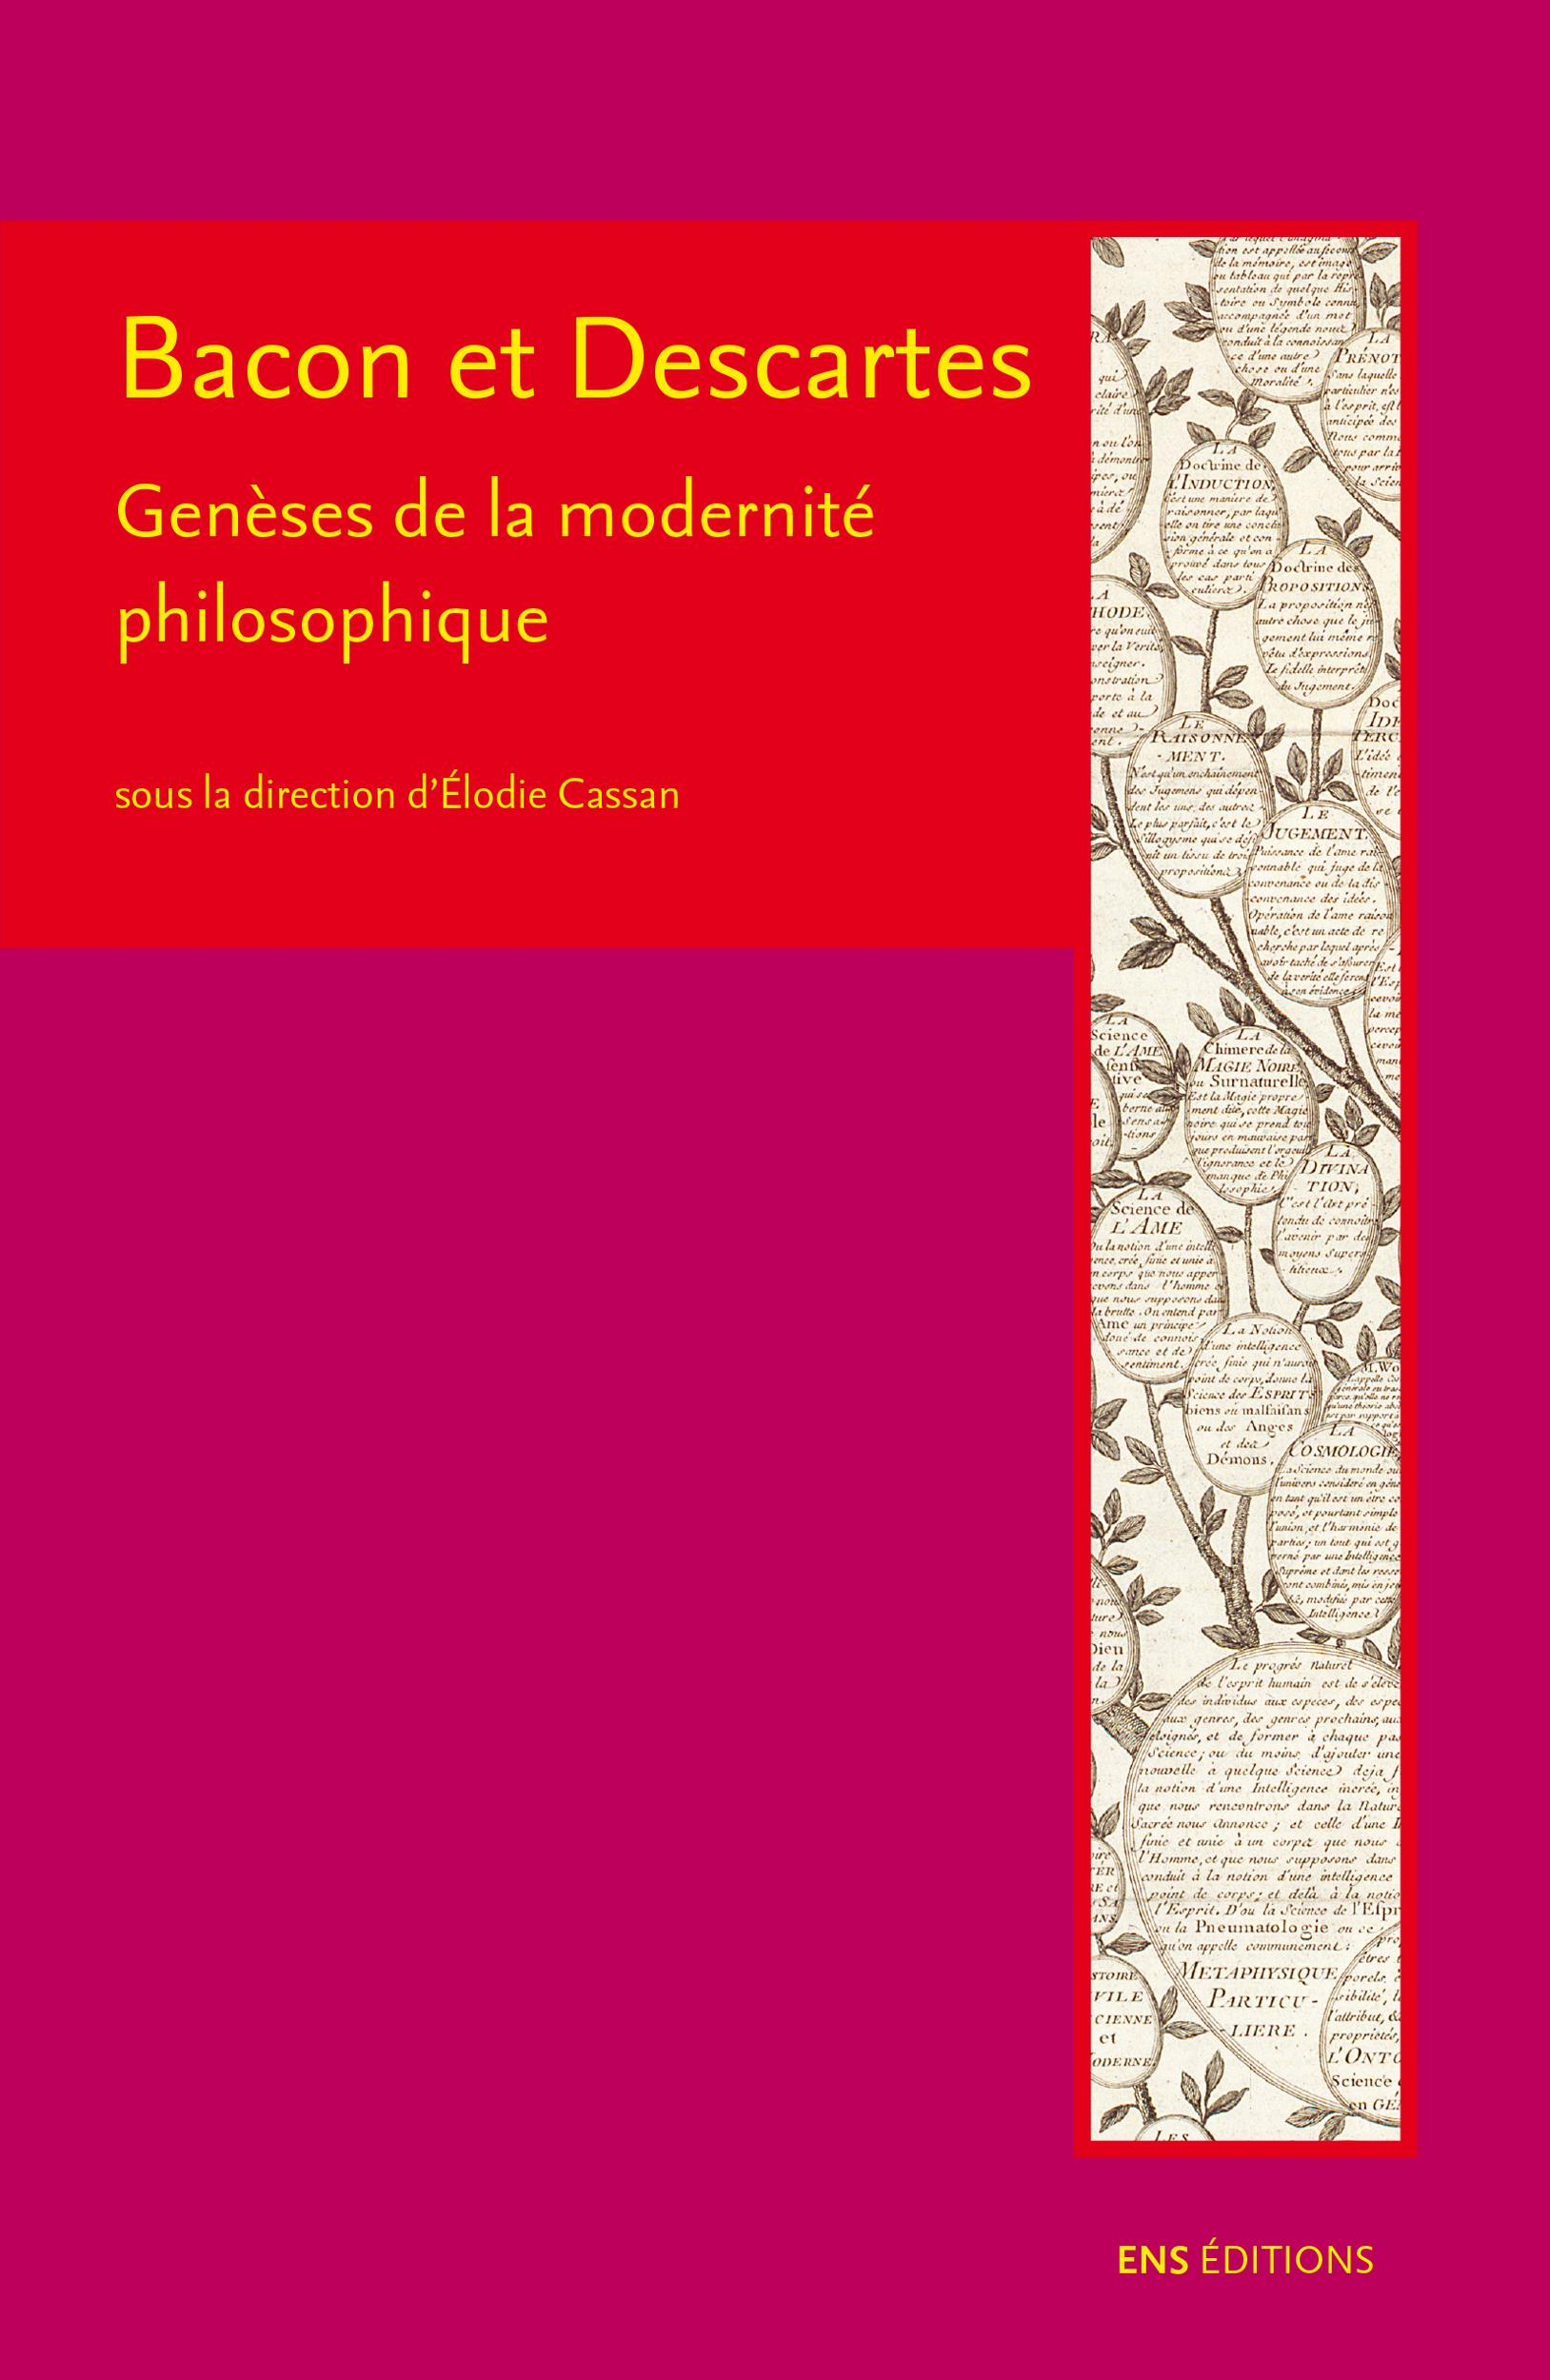 BACON ET DESCARTES : GENESES DE LA MODERNITE PHILOSOPHIQUE